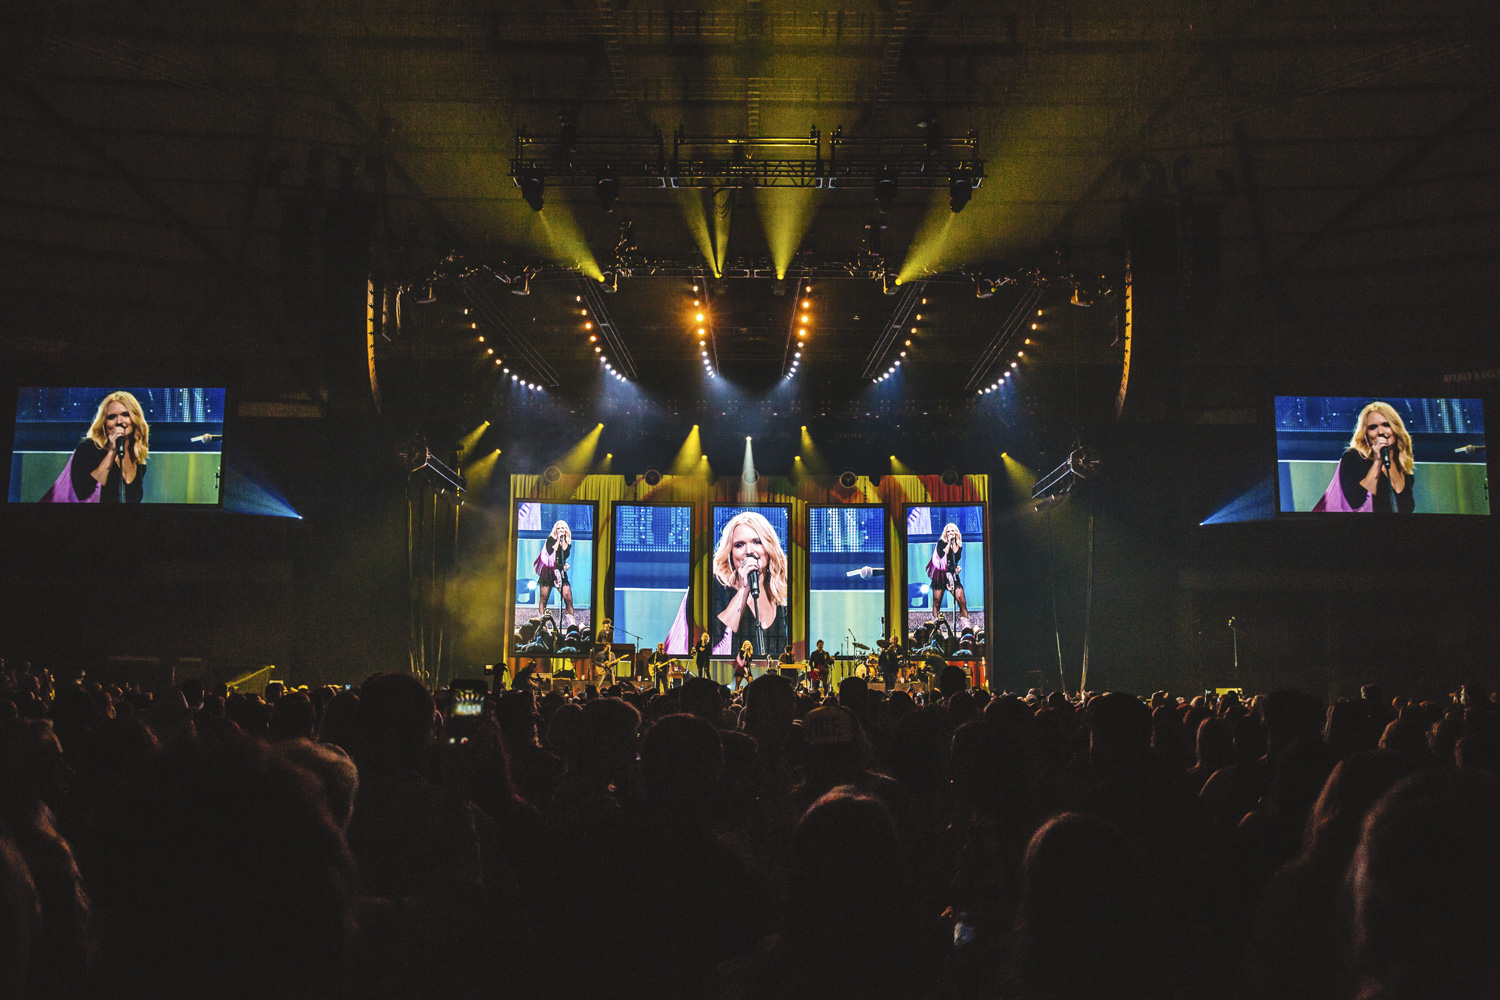 The Livin' Like Hippies Tour swung by Tacoma last night (February 1, 2018) as one of the Queens of Country herself, Ms. Miranda Lambert, left it all on the floor at the Dome. The stop was Lambert's first on the tour; she'll go on to play 20 other shows throughout the country, ending in March 2018. (Image: Sunita Martini / Seattle Refined){ }